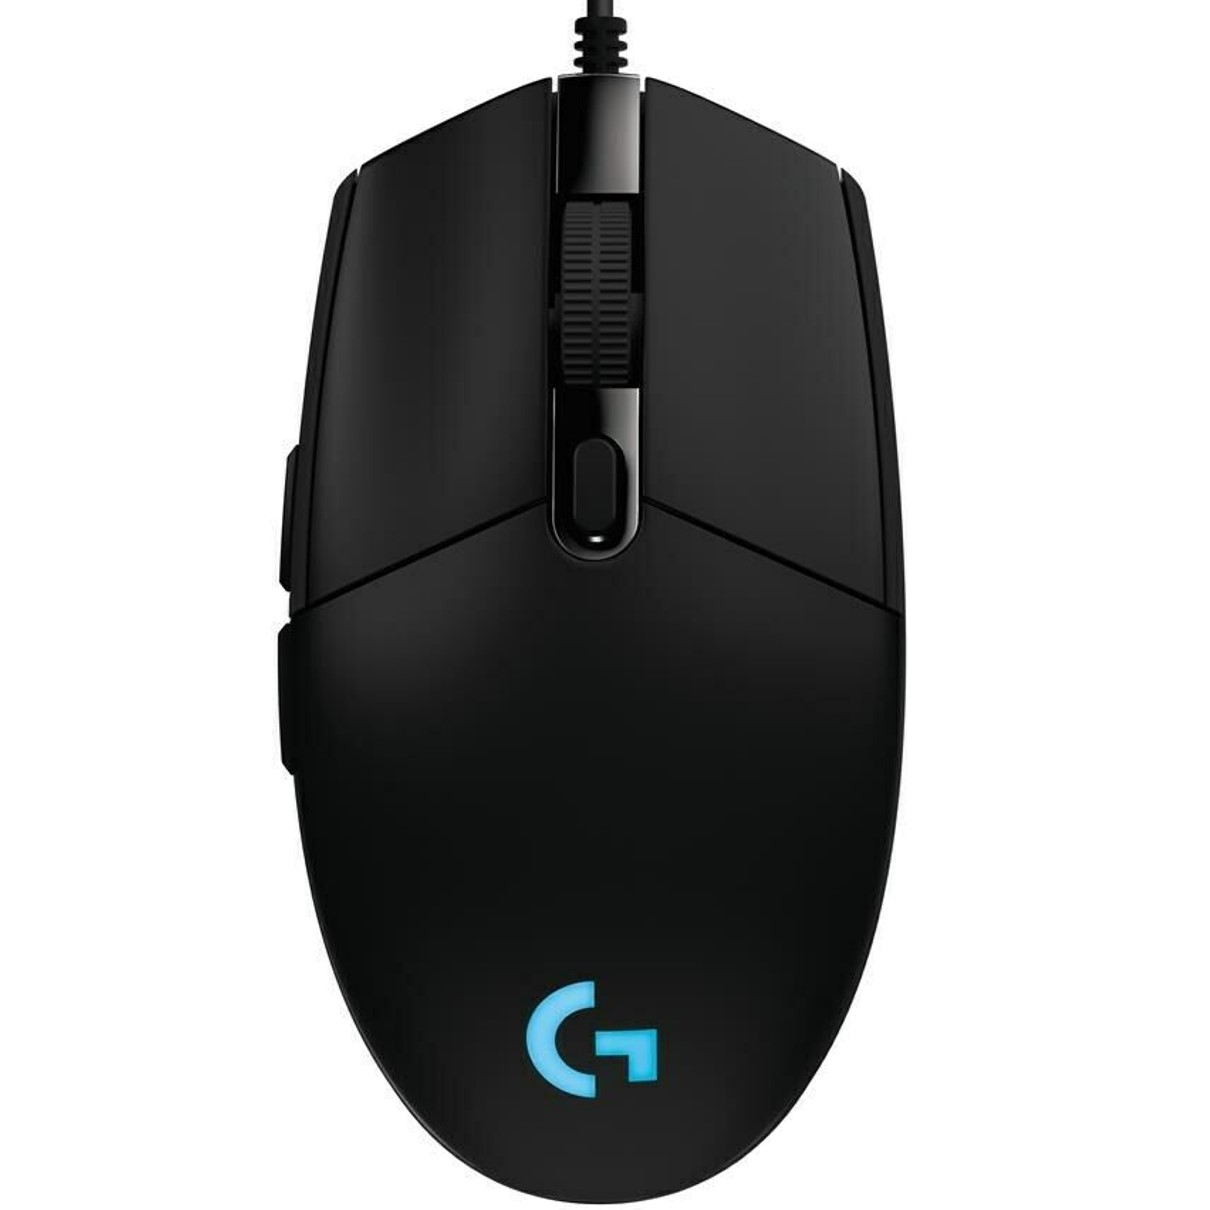 MOUSE LOGITECH GAMING G203 PRODIGY  P/N:910-004845